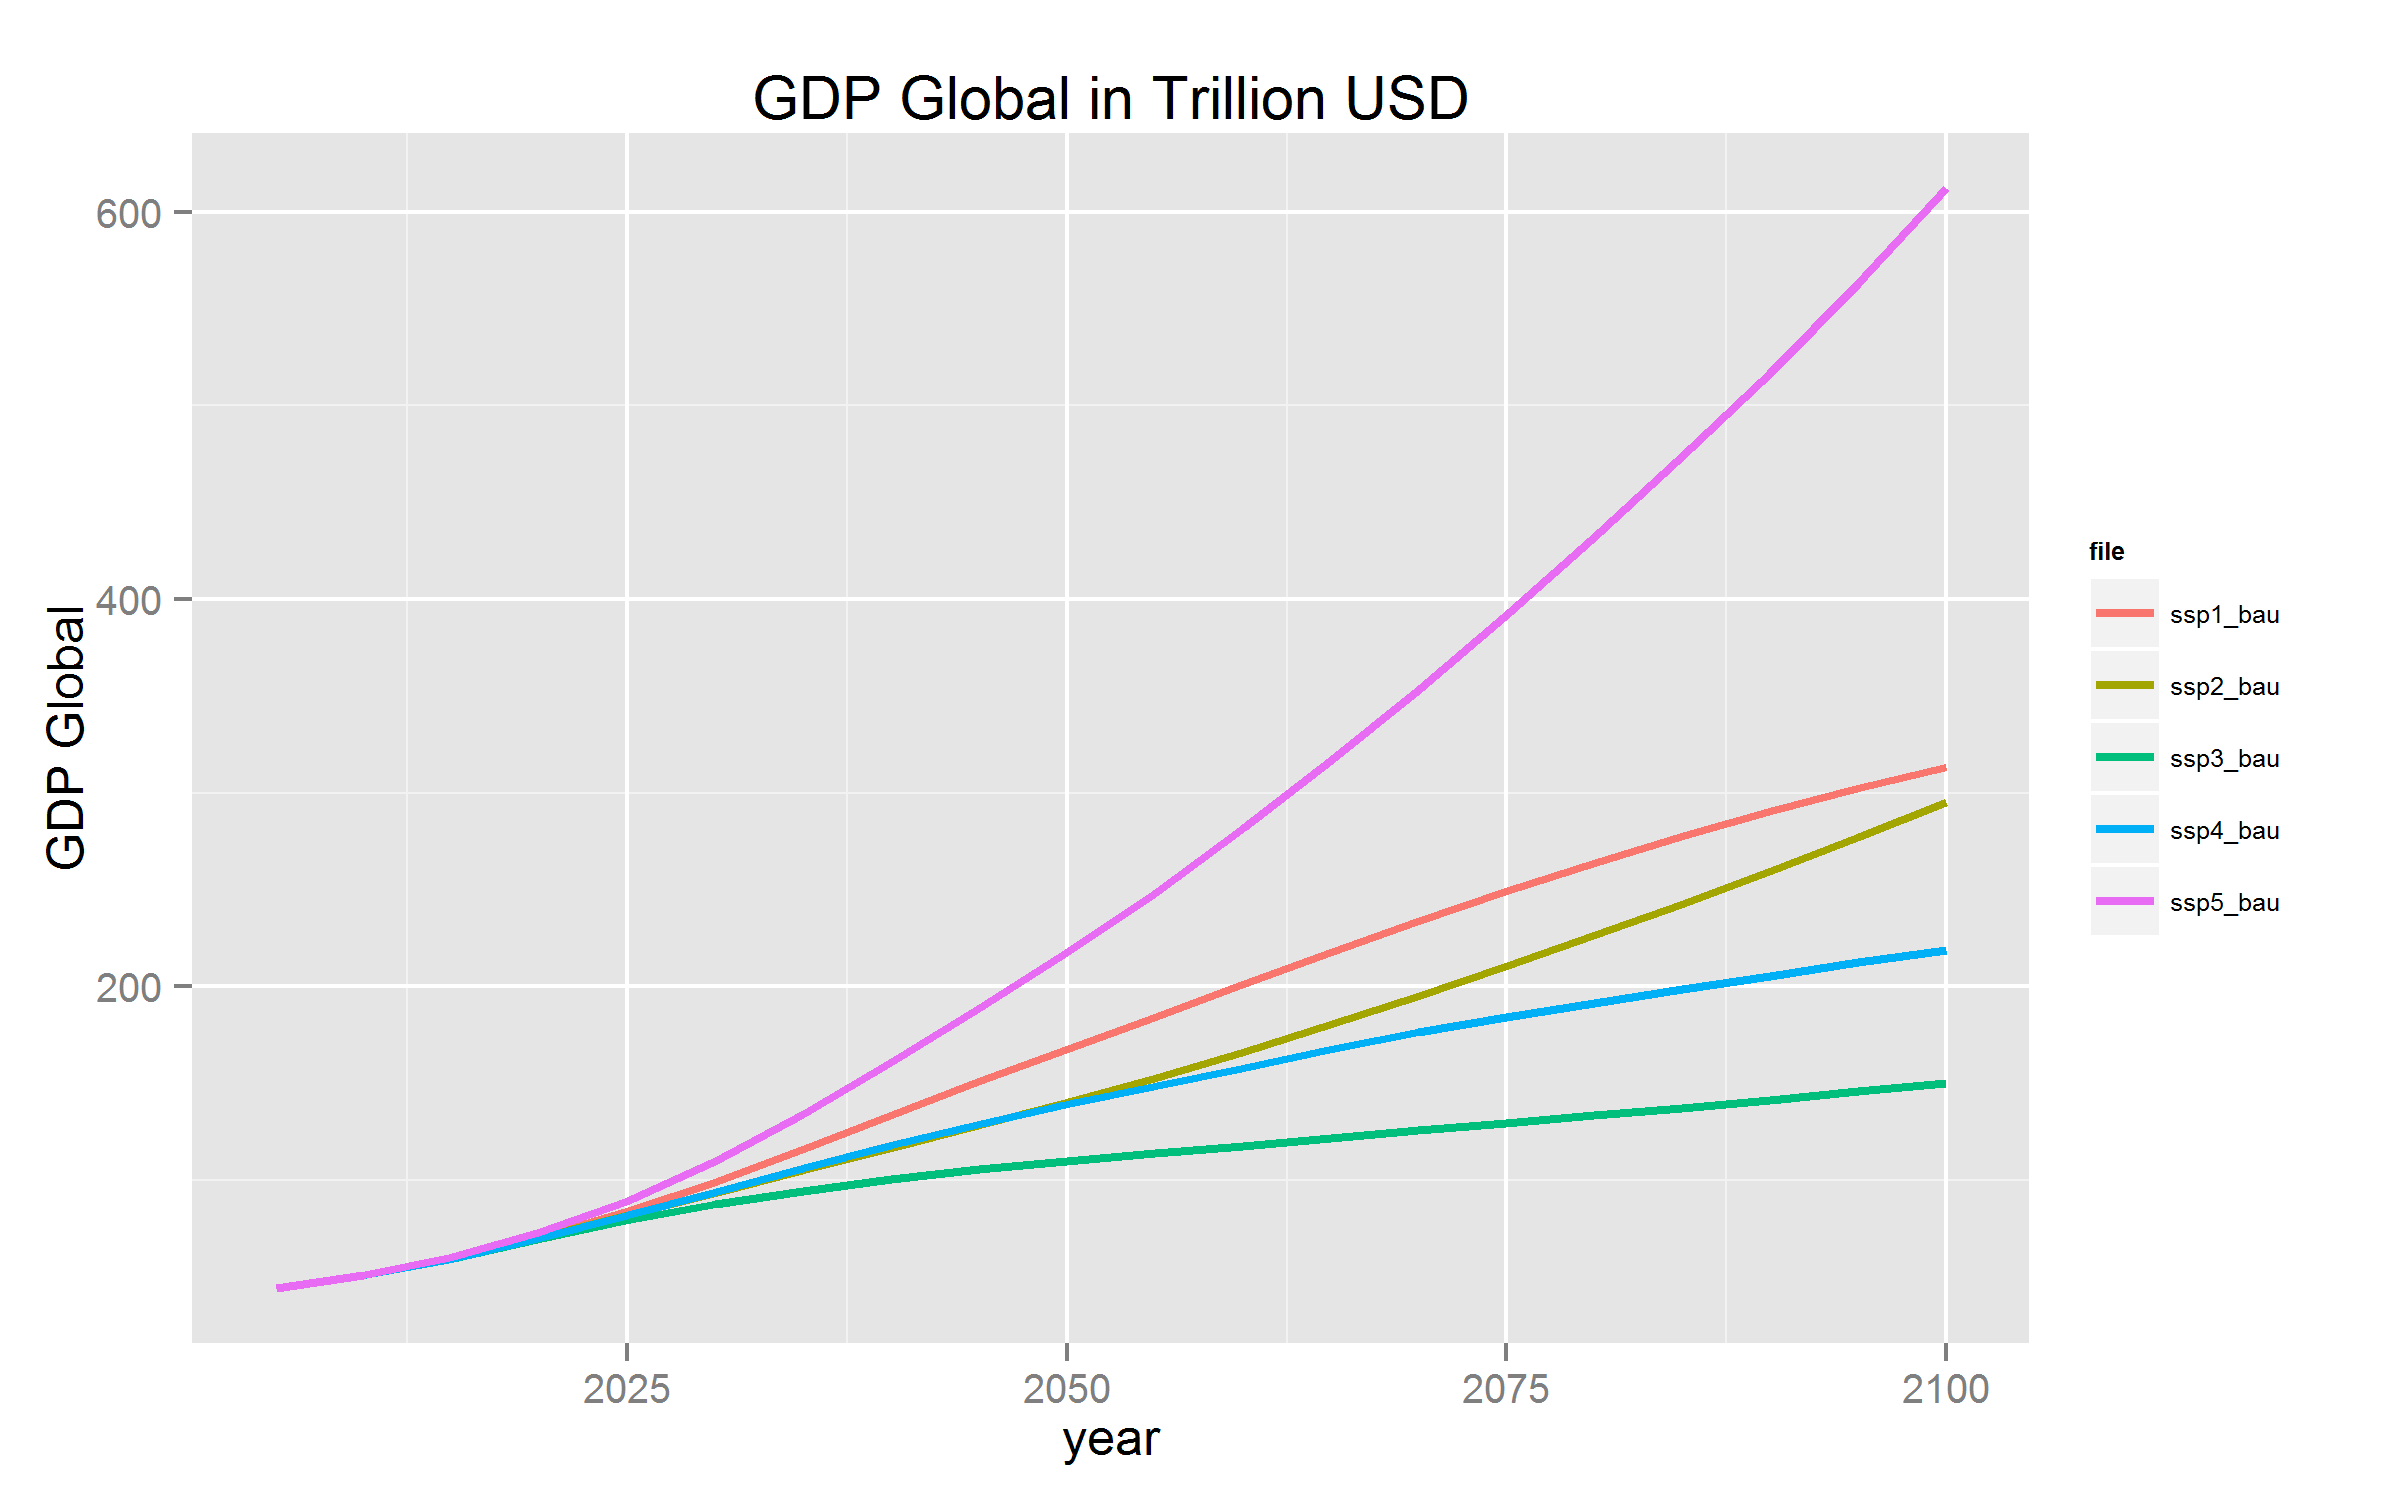 gdp_global_all.png